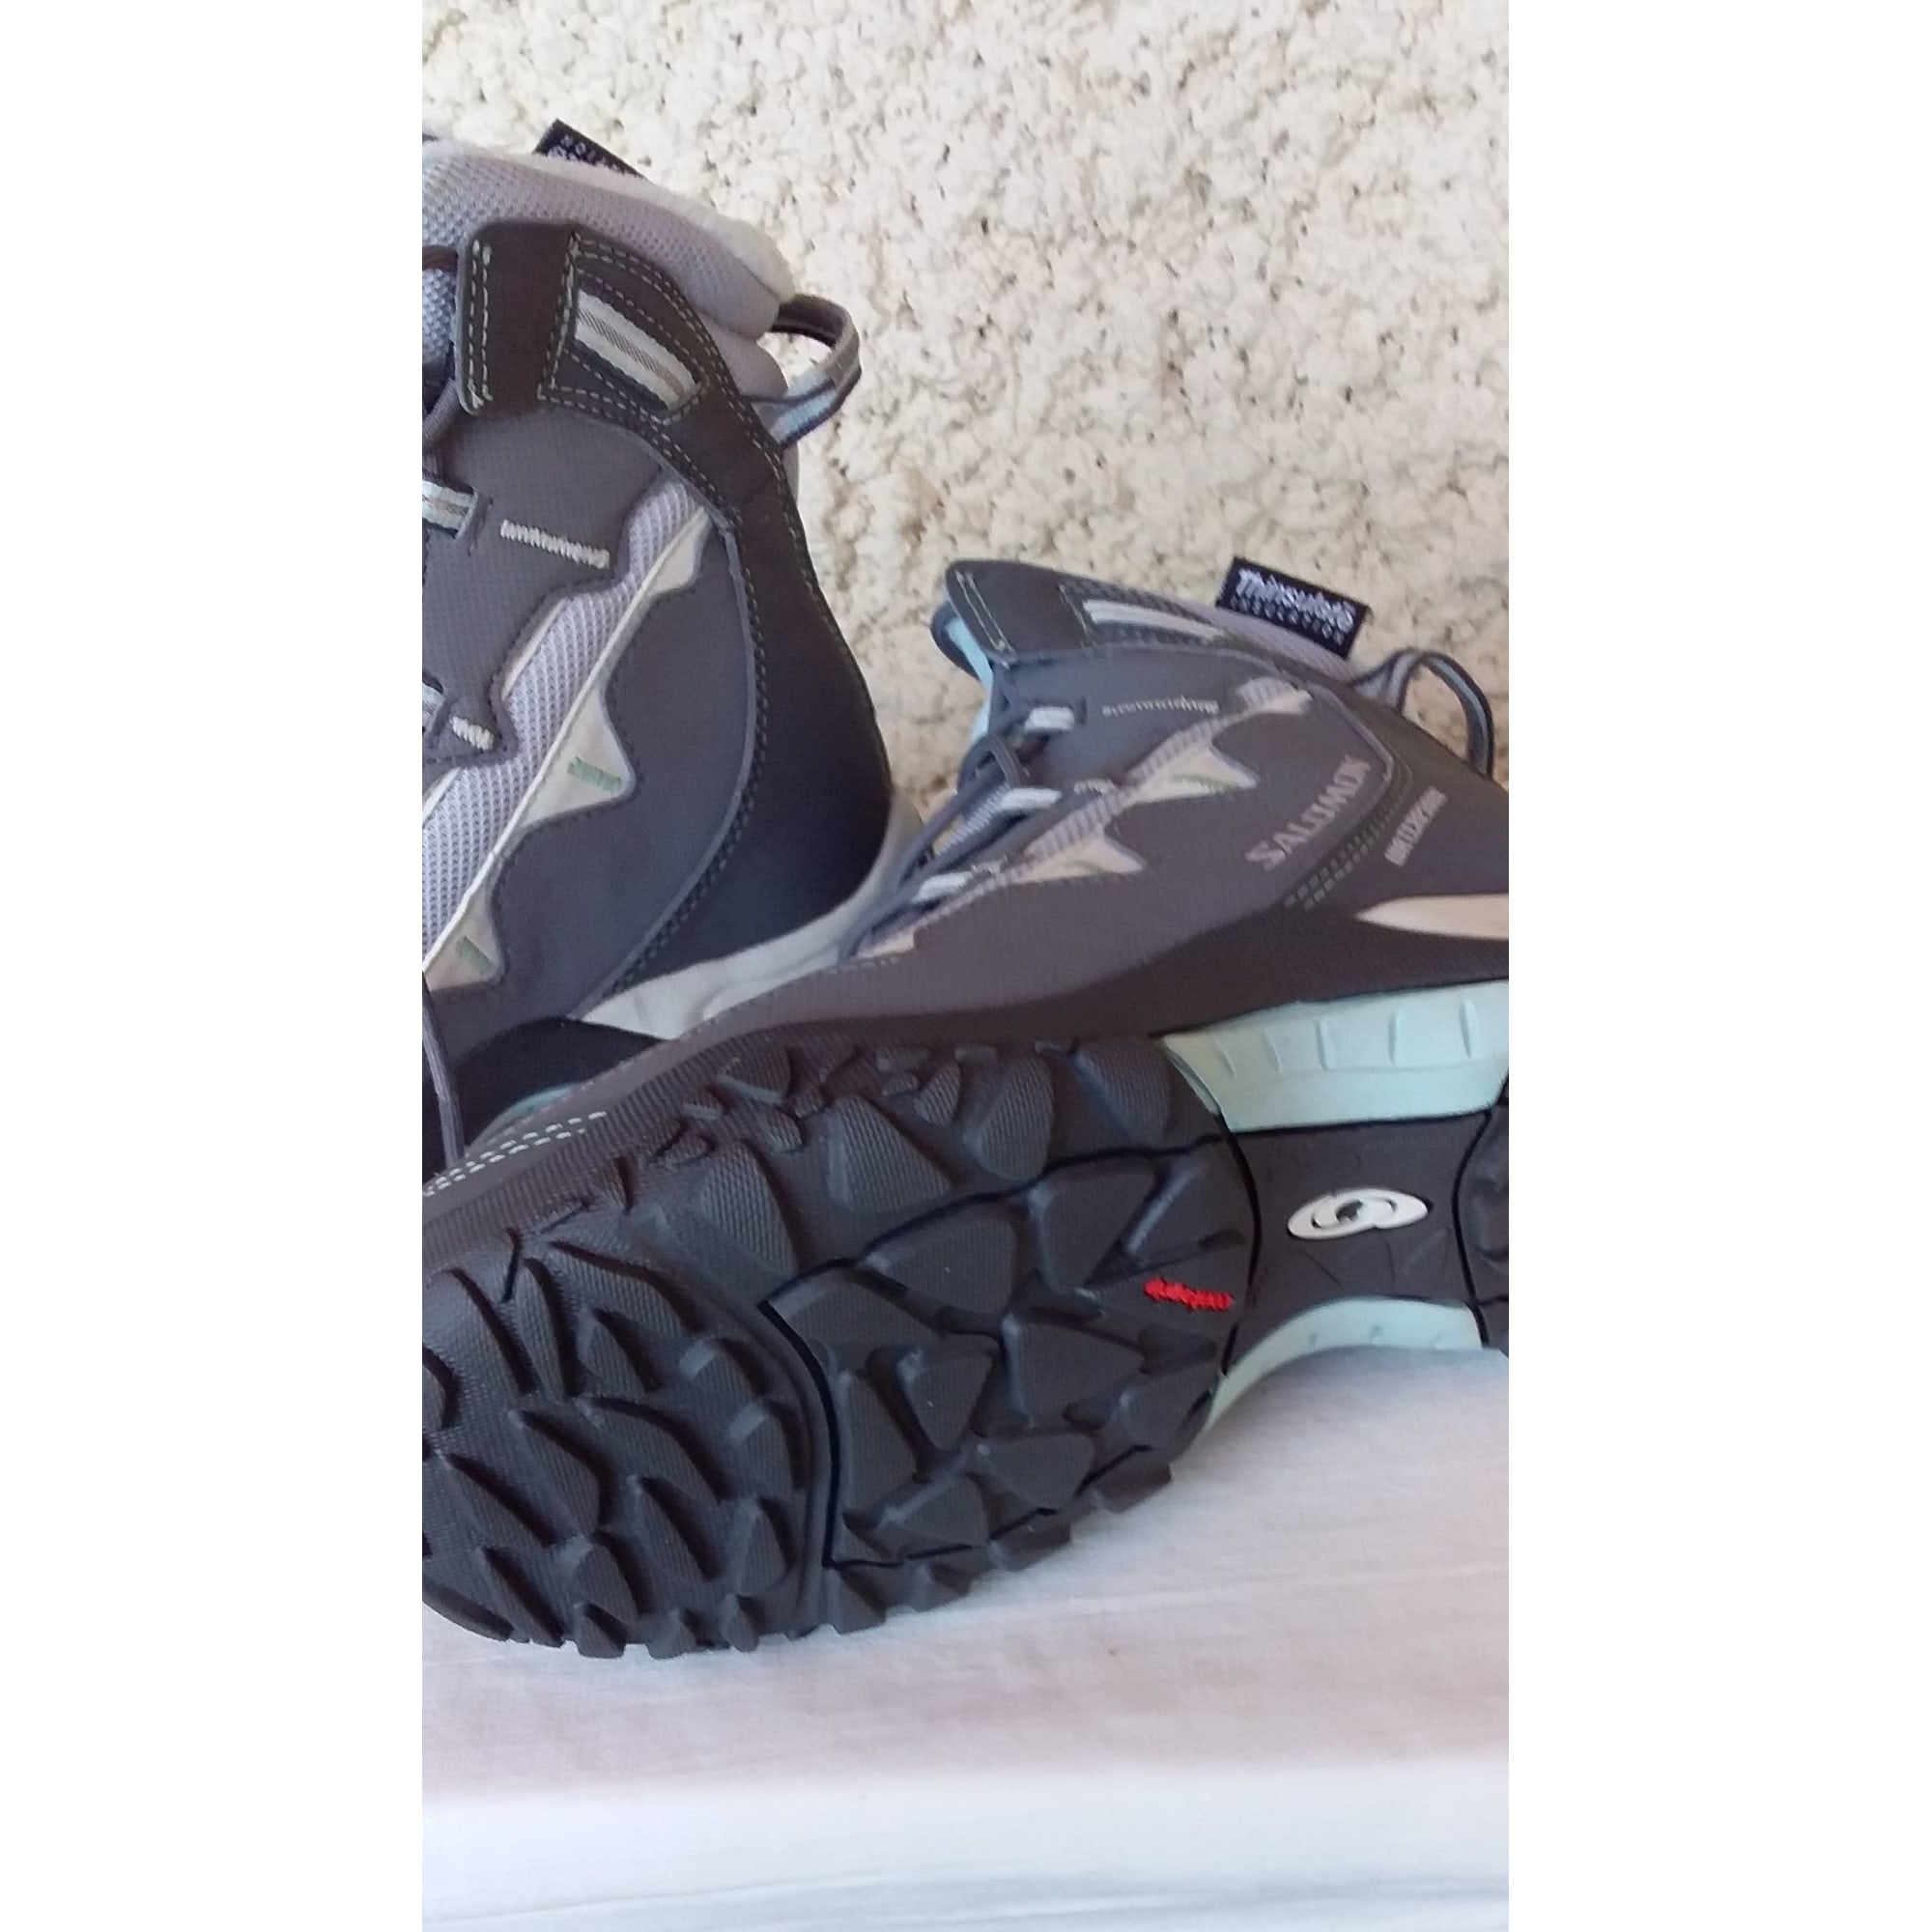 Chaussures de sport SALOMON Gris, anthracite